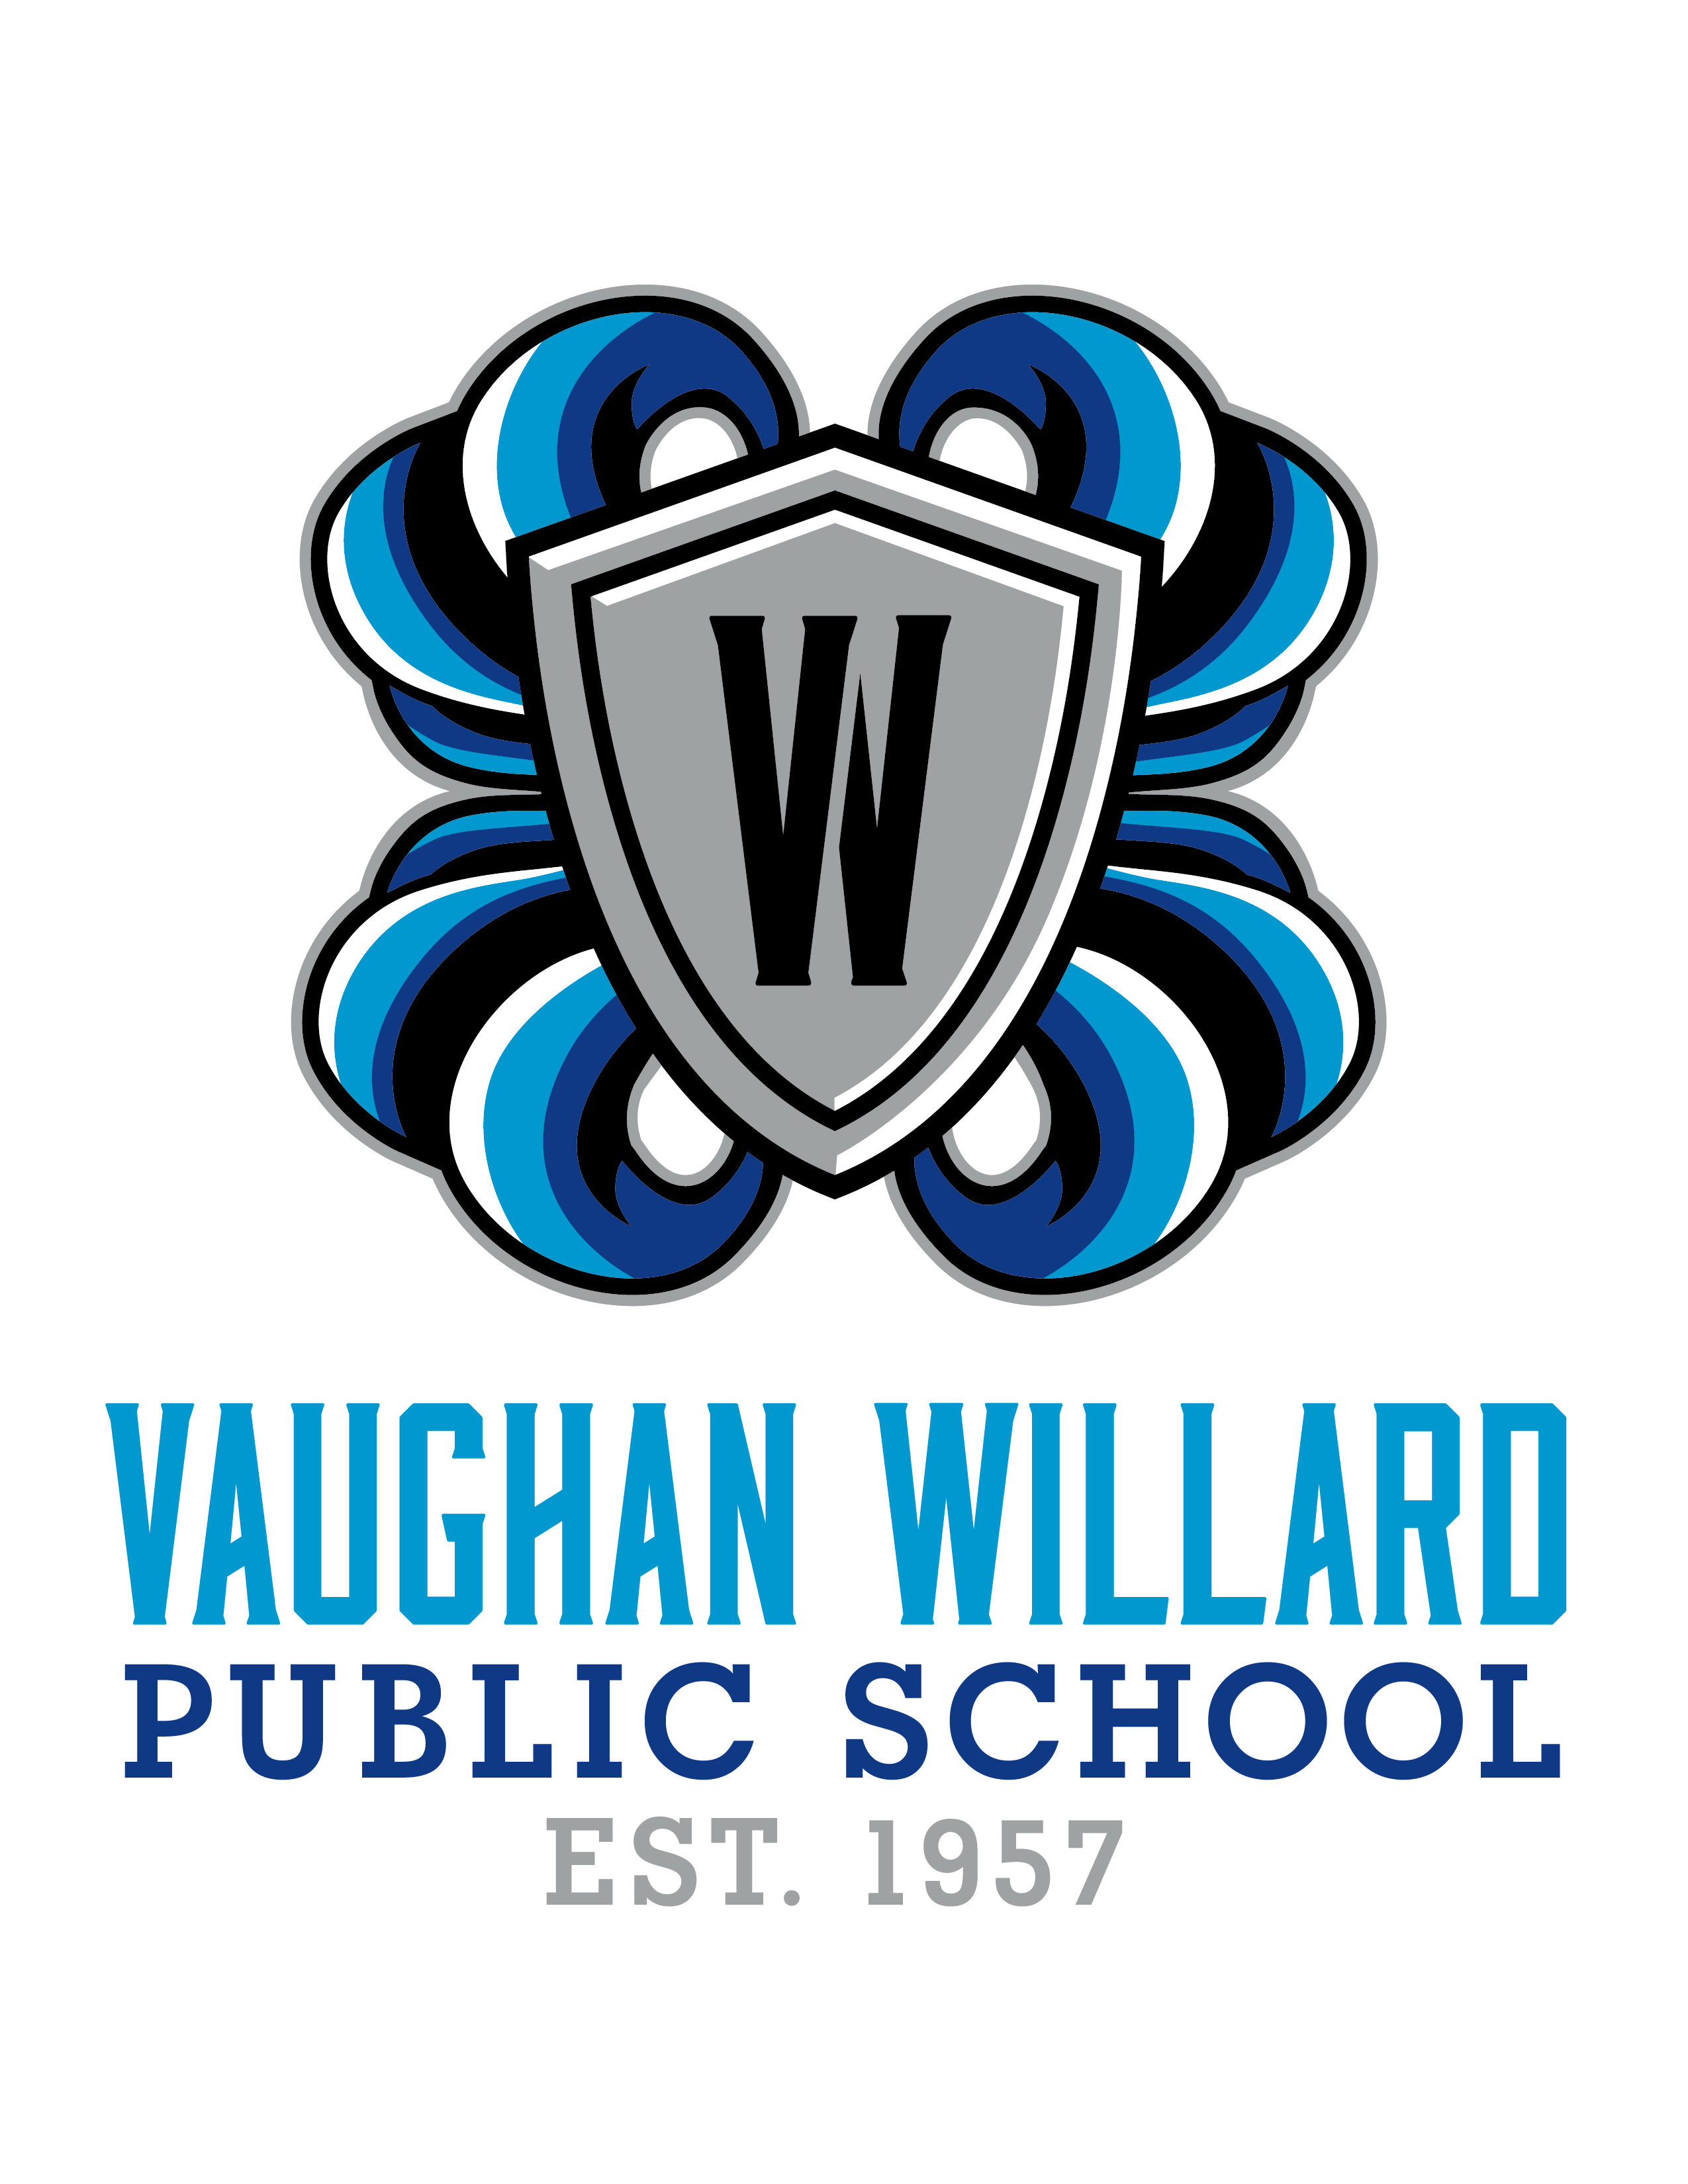 Vaughan Willard Public School logo